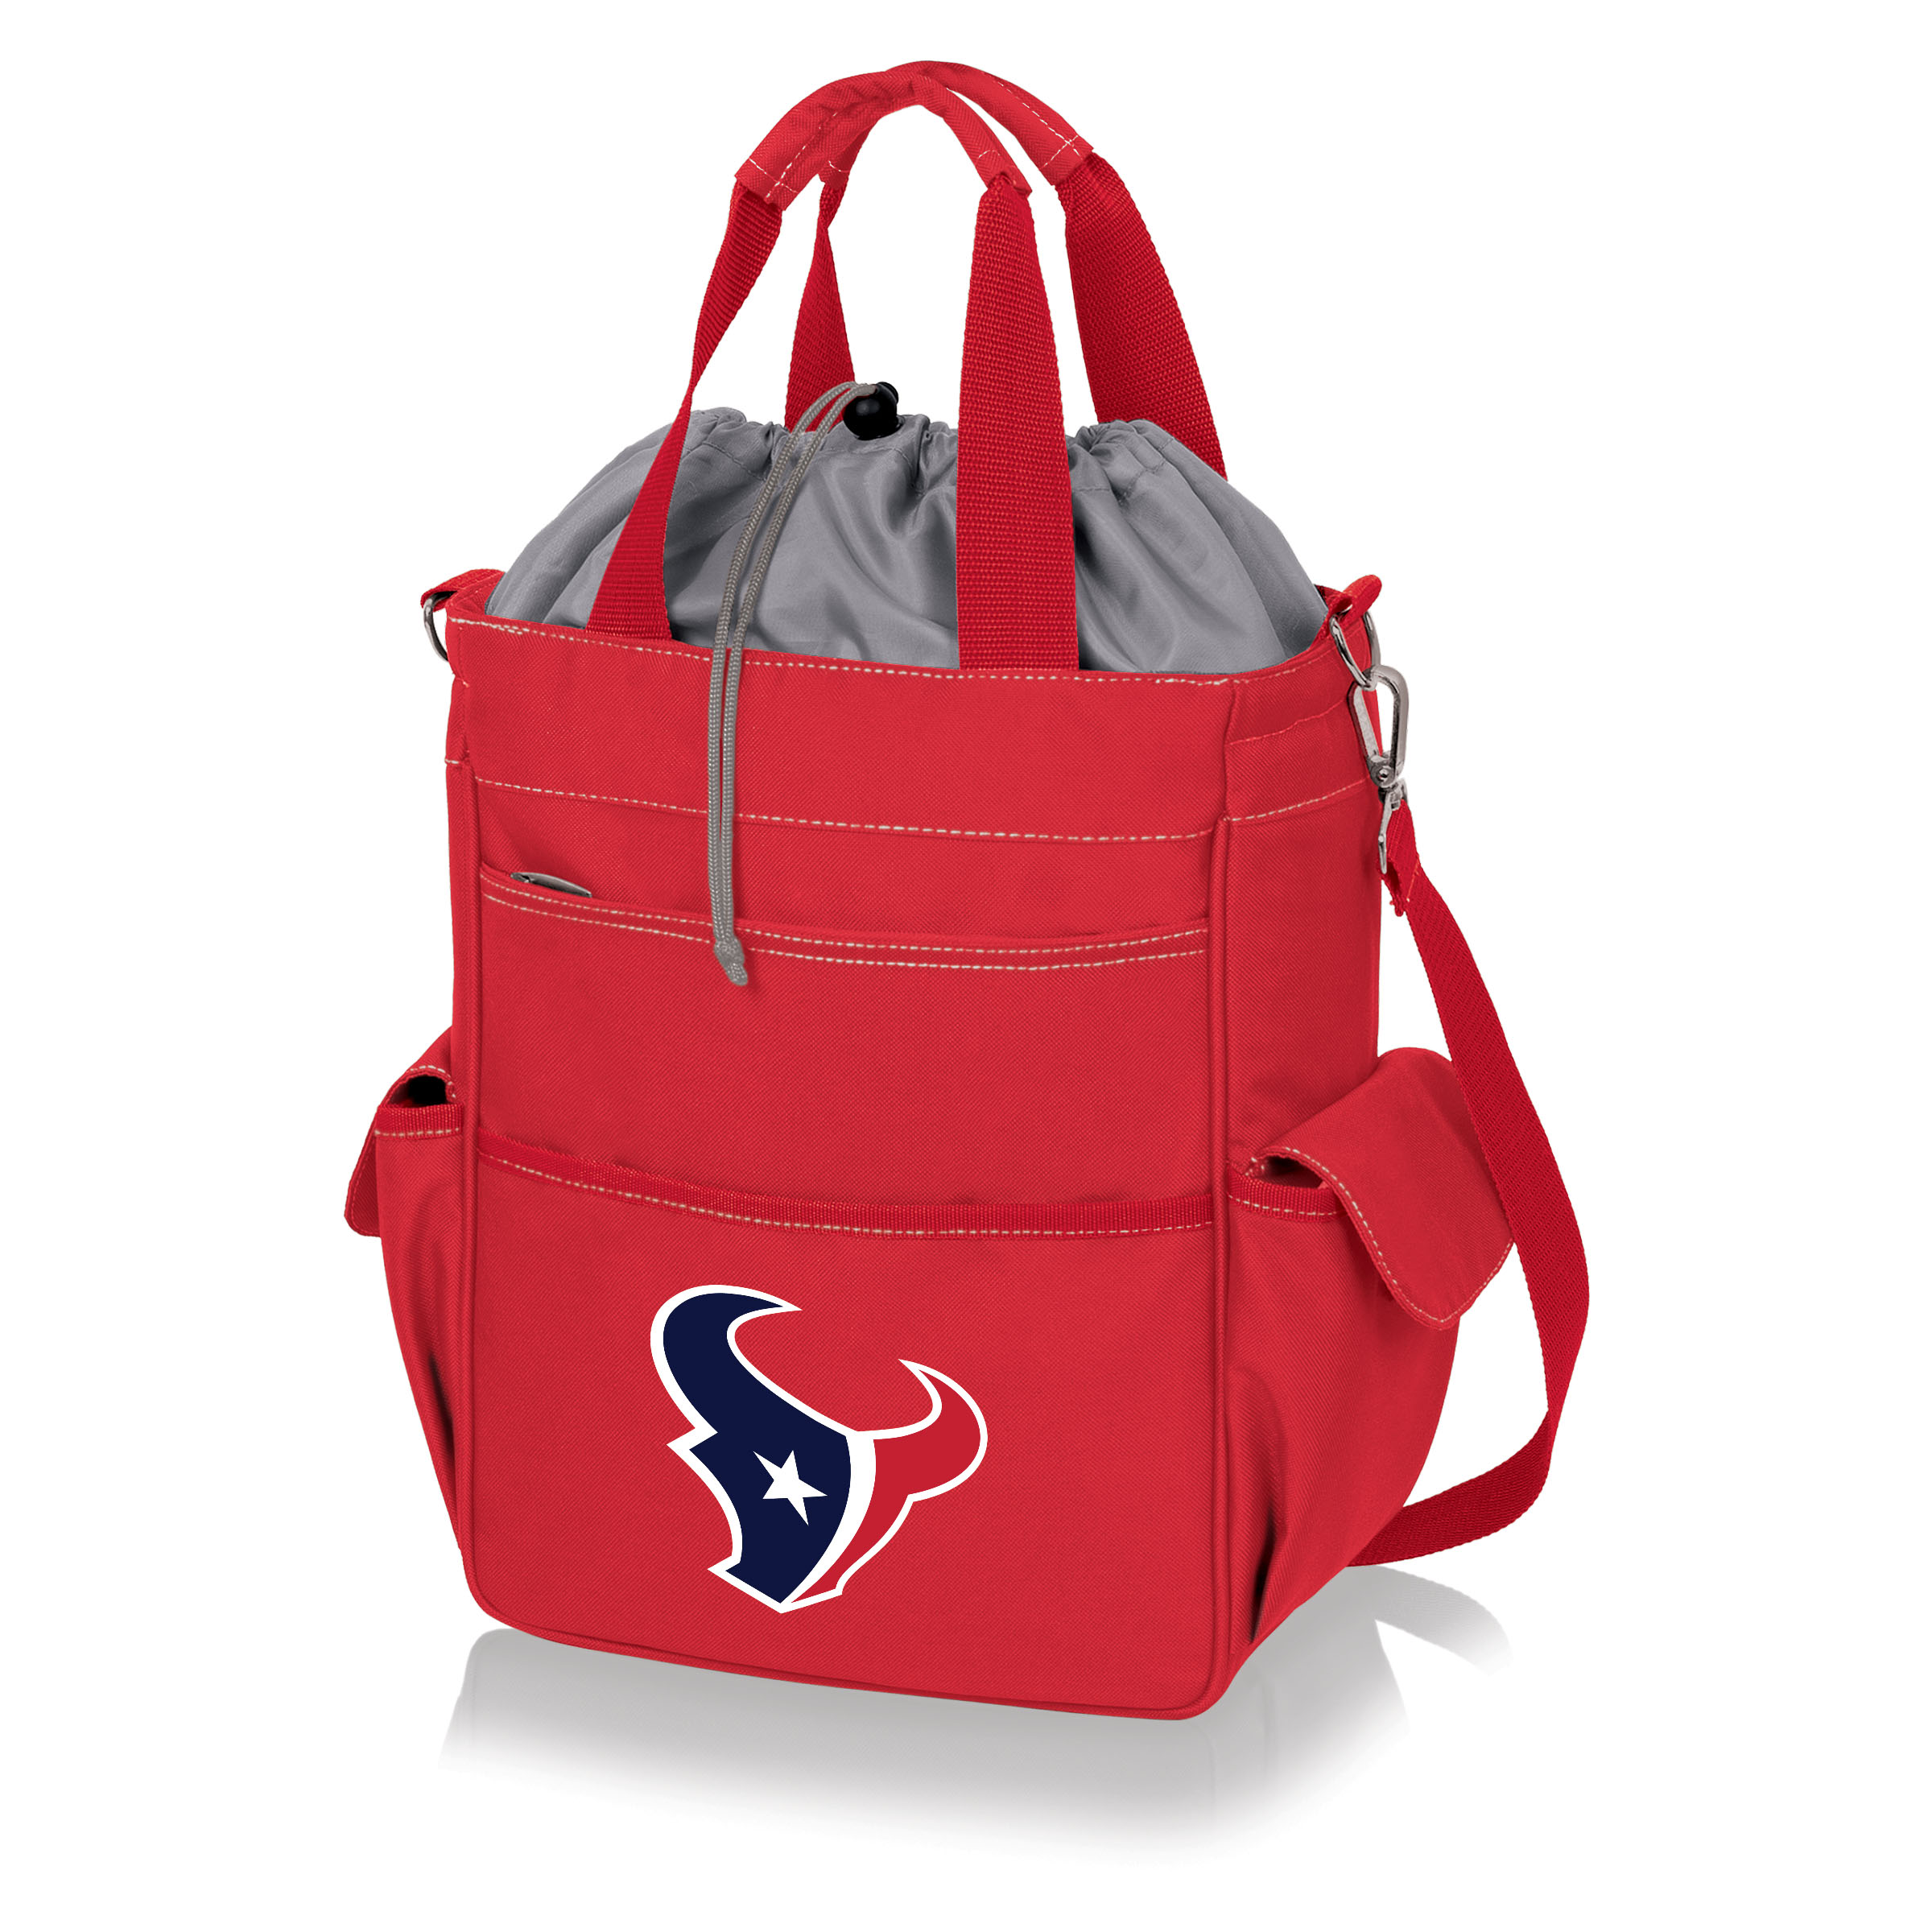 Houston Texans Activo Cooler Tote - Red - No Size